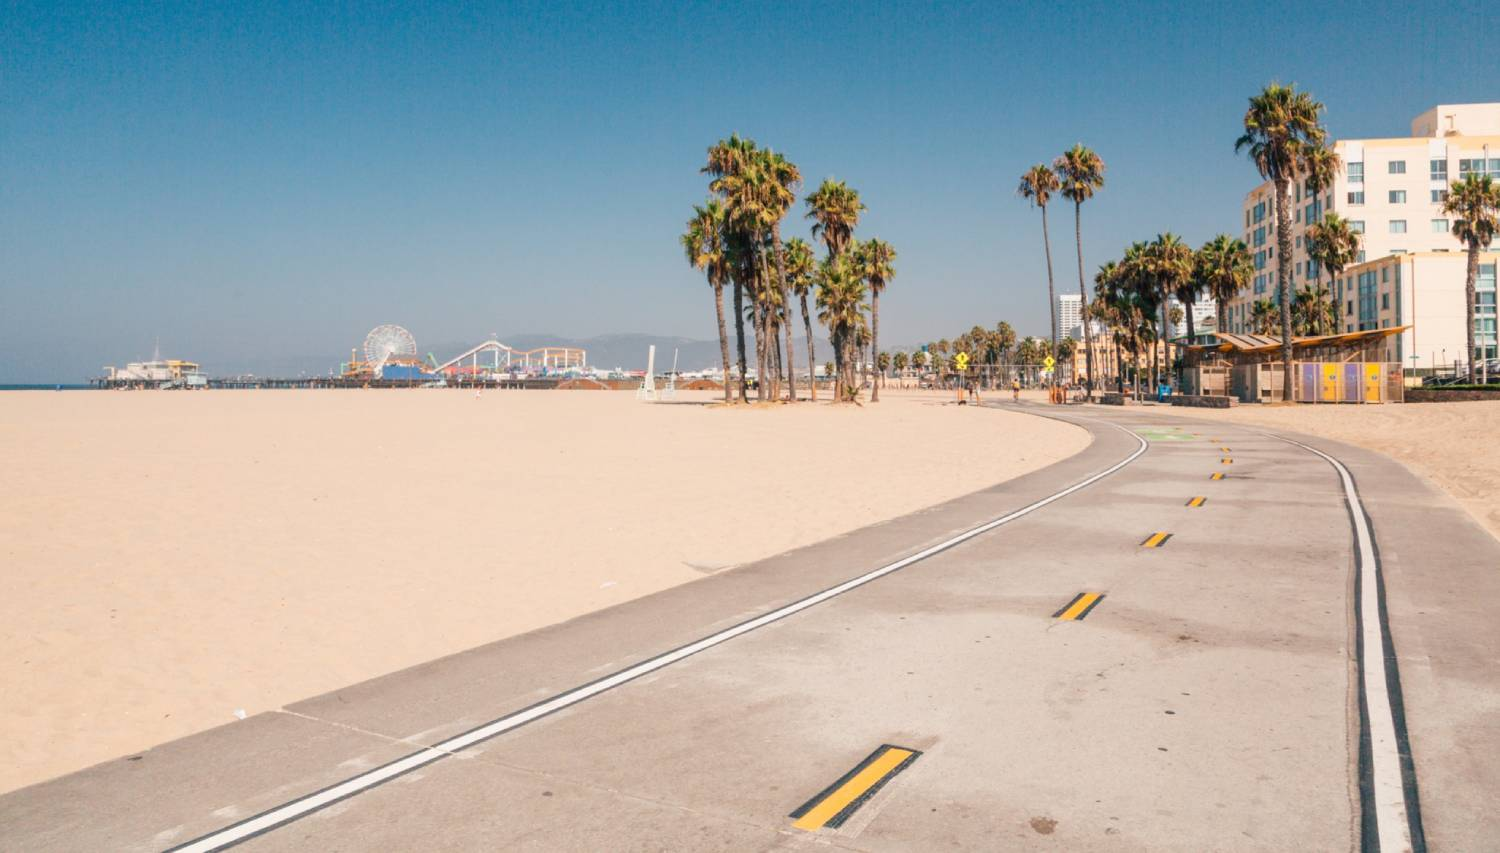 26-Mile Bike Path - Things To Do In Los Angeles